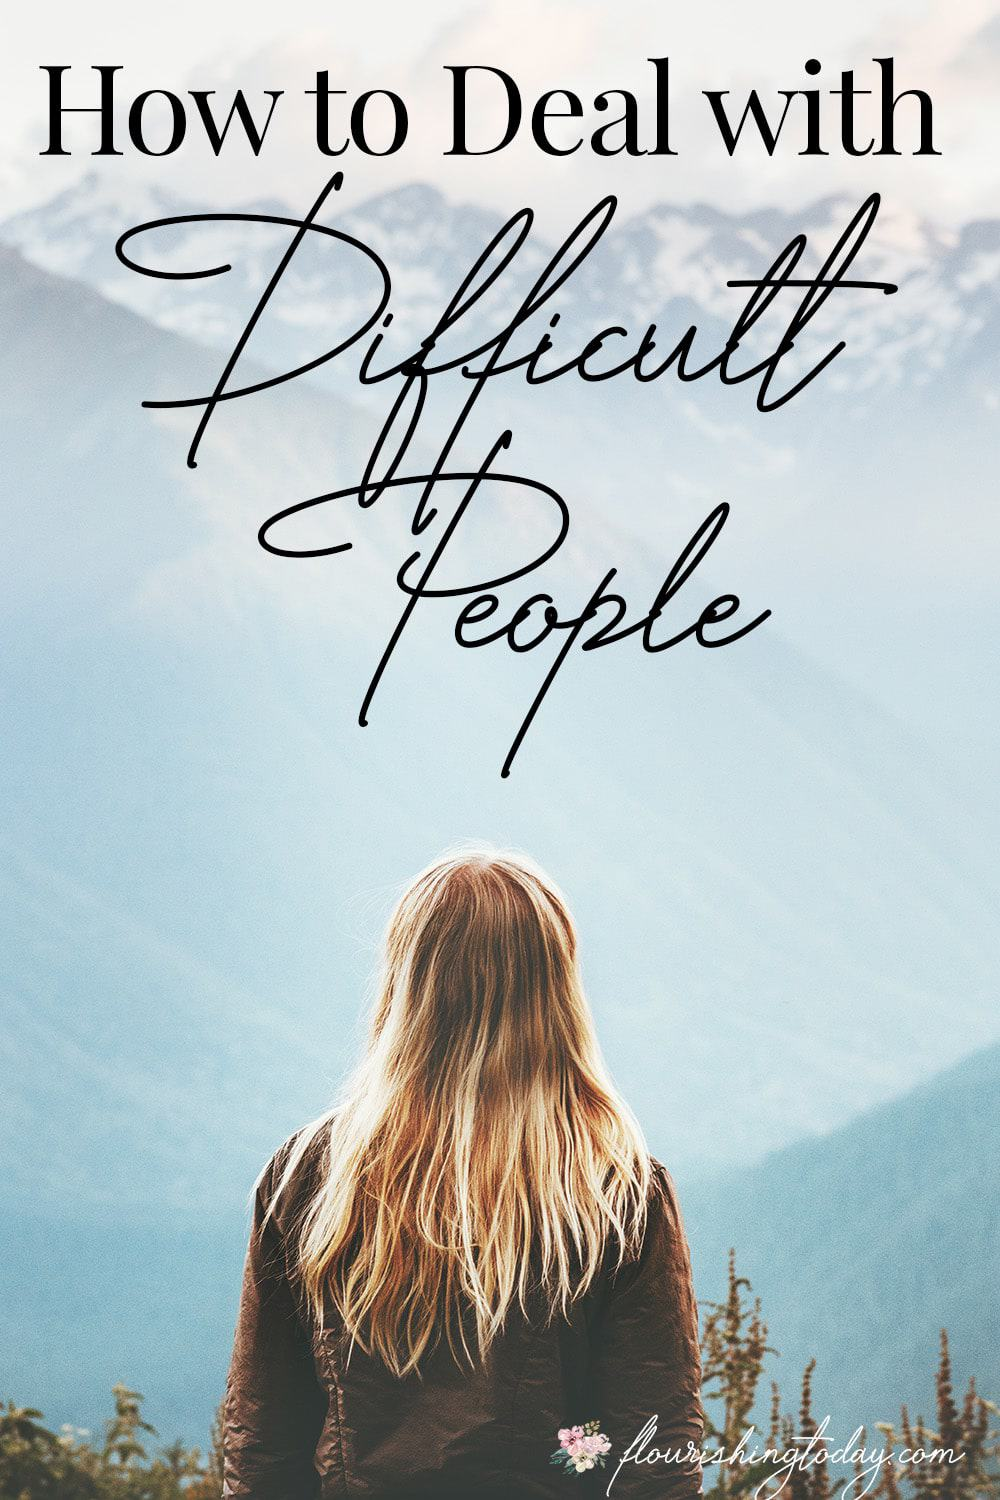 How do you deal with difficult people? Although it's apart of life it isn't always easy to navigate. Here are some tips on how to deal with difficult people.